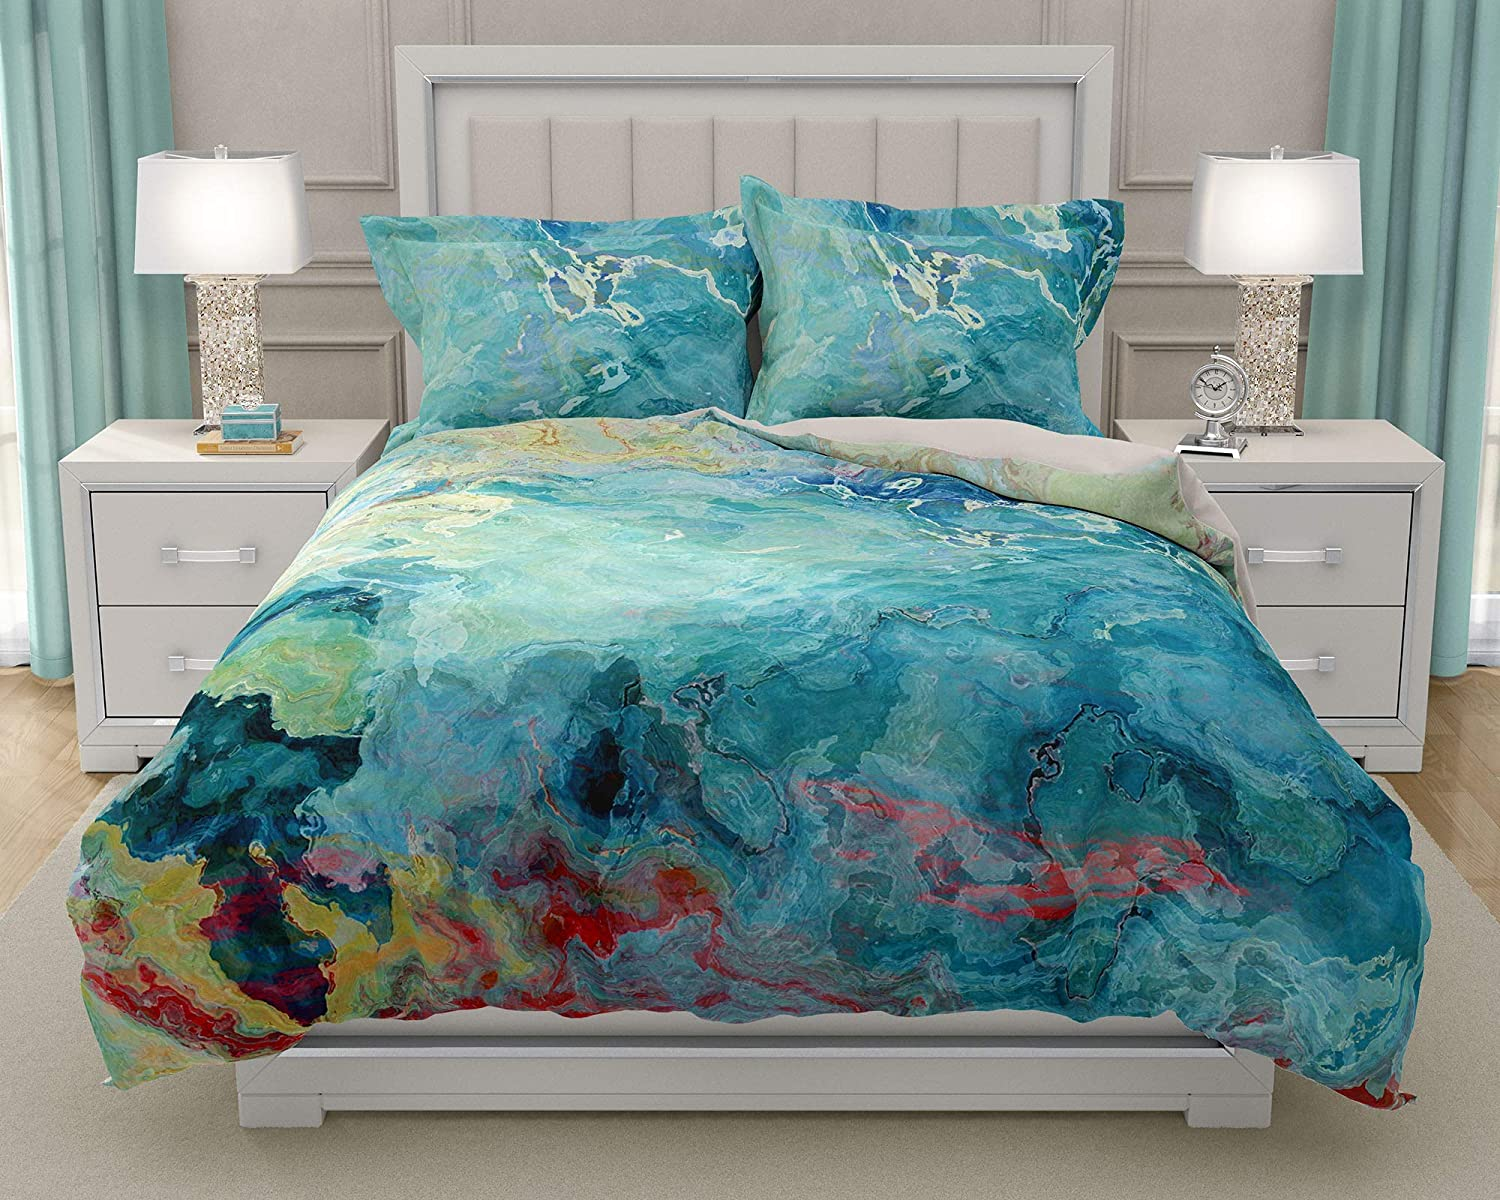 Image of King or Queen 3 pc Duvet Cover Set with abstract art, Cool Cucumber